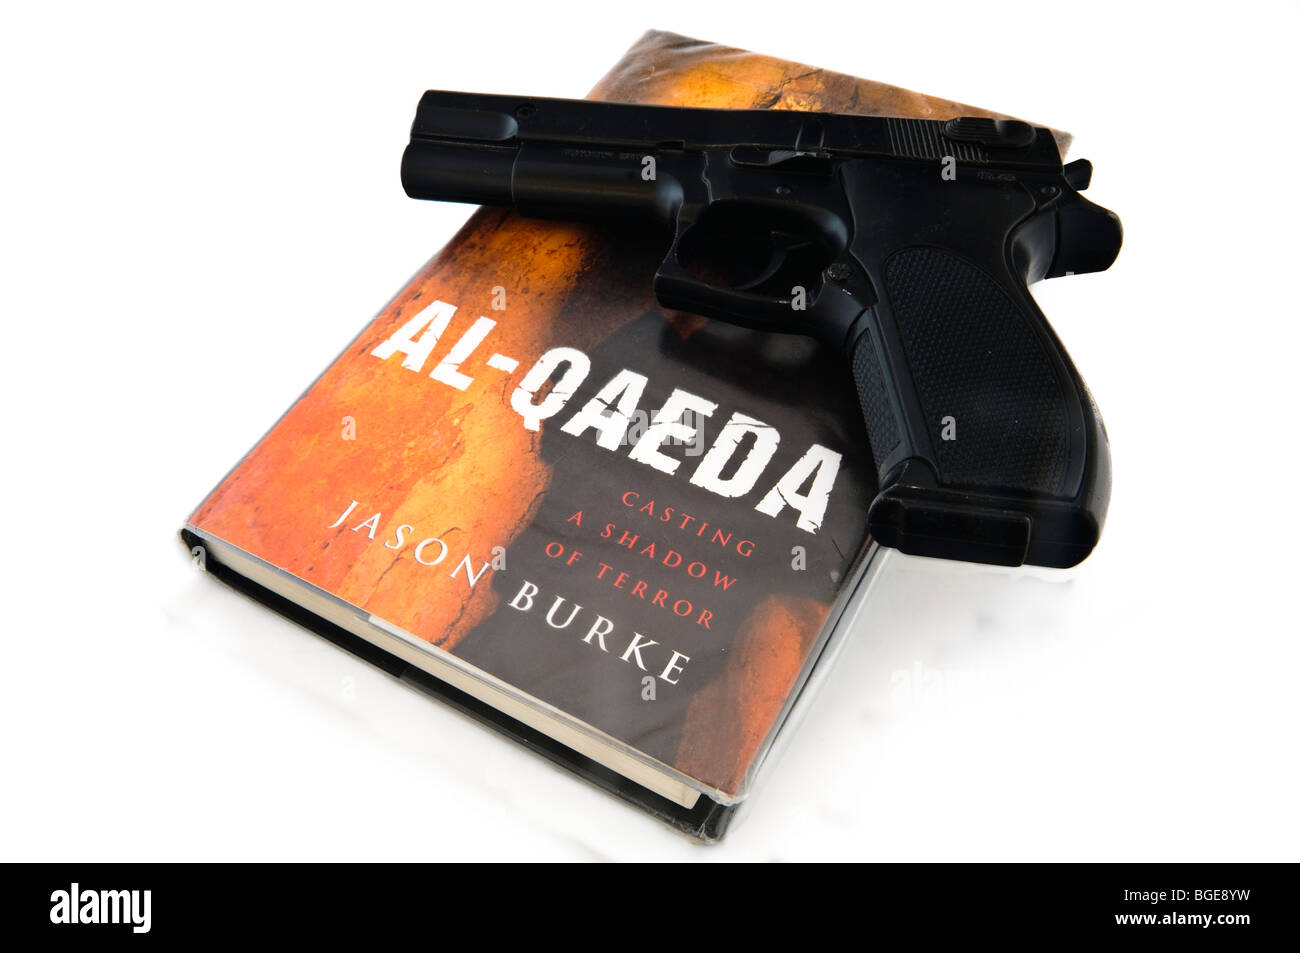 Handgun sitting on top of a book 'Al-Qaeda' by Jason Burke - Stock Image